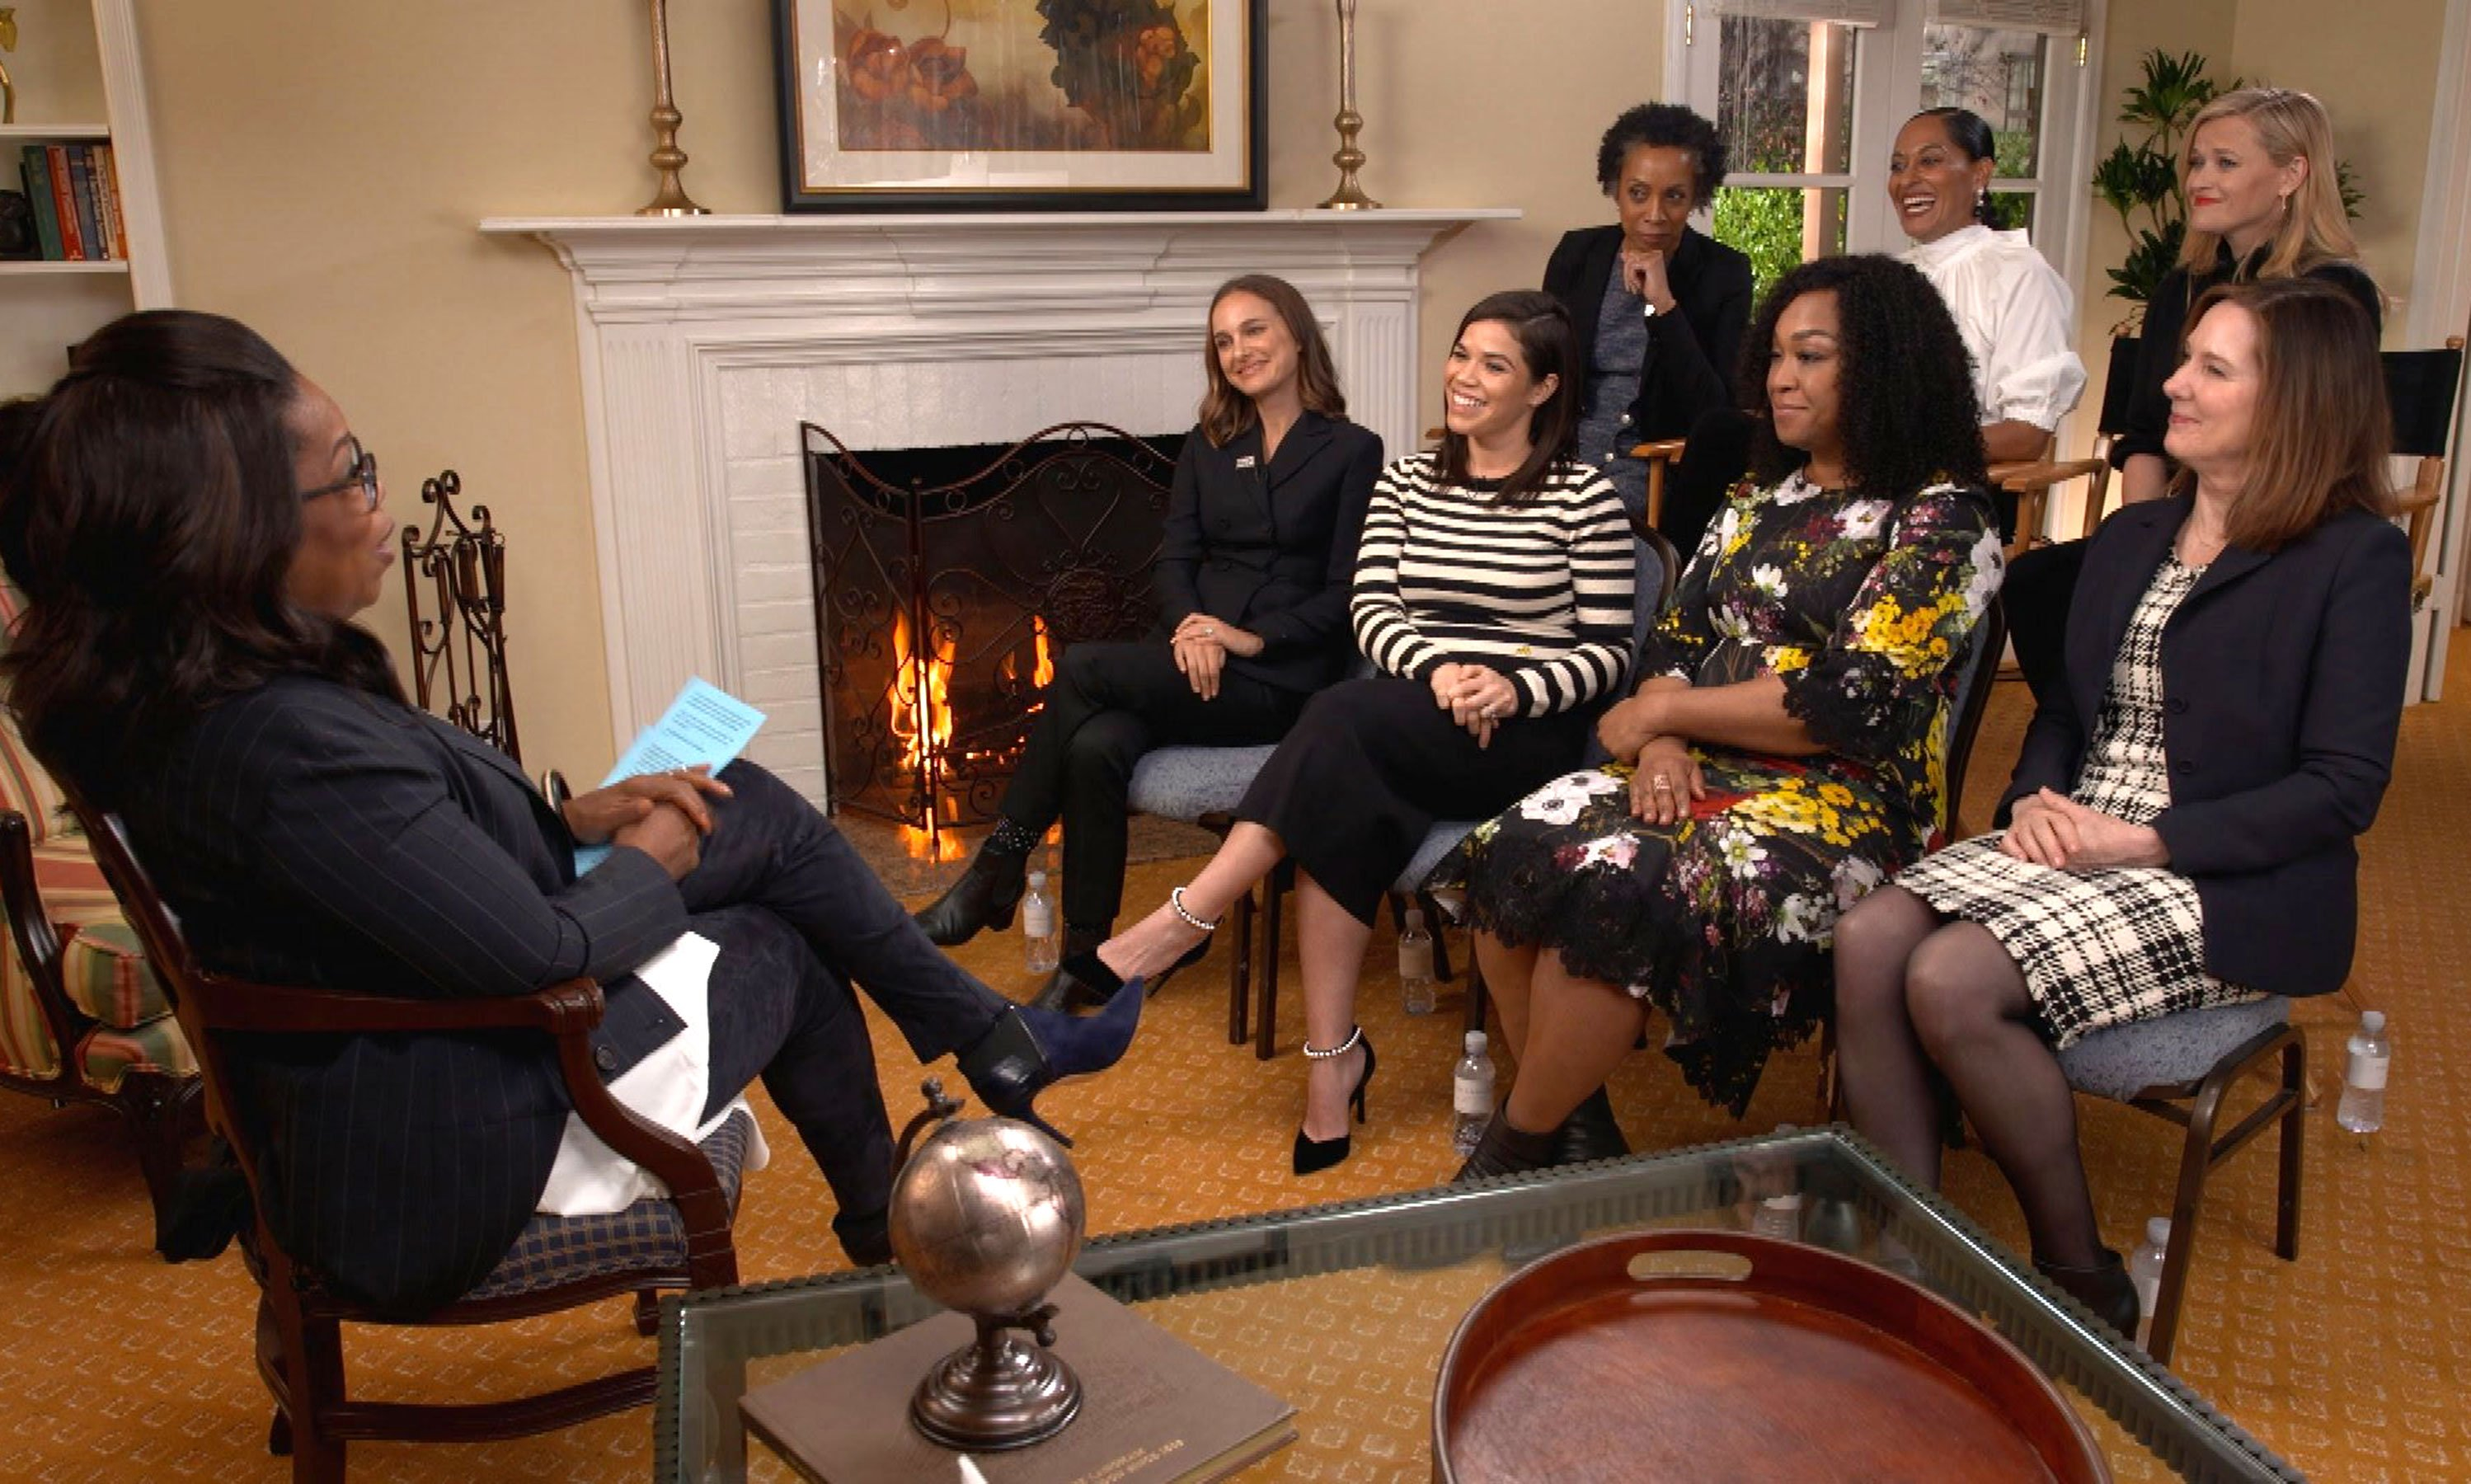 Oprah Winfrey: Reese Witherspoon, Shonda Rhimes, Natalie Portman, more discuss Time's Up